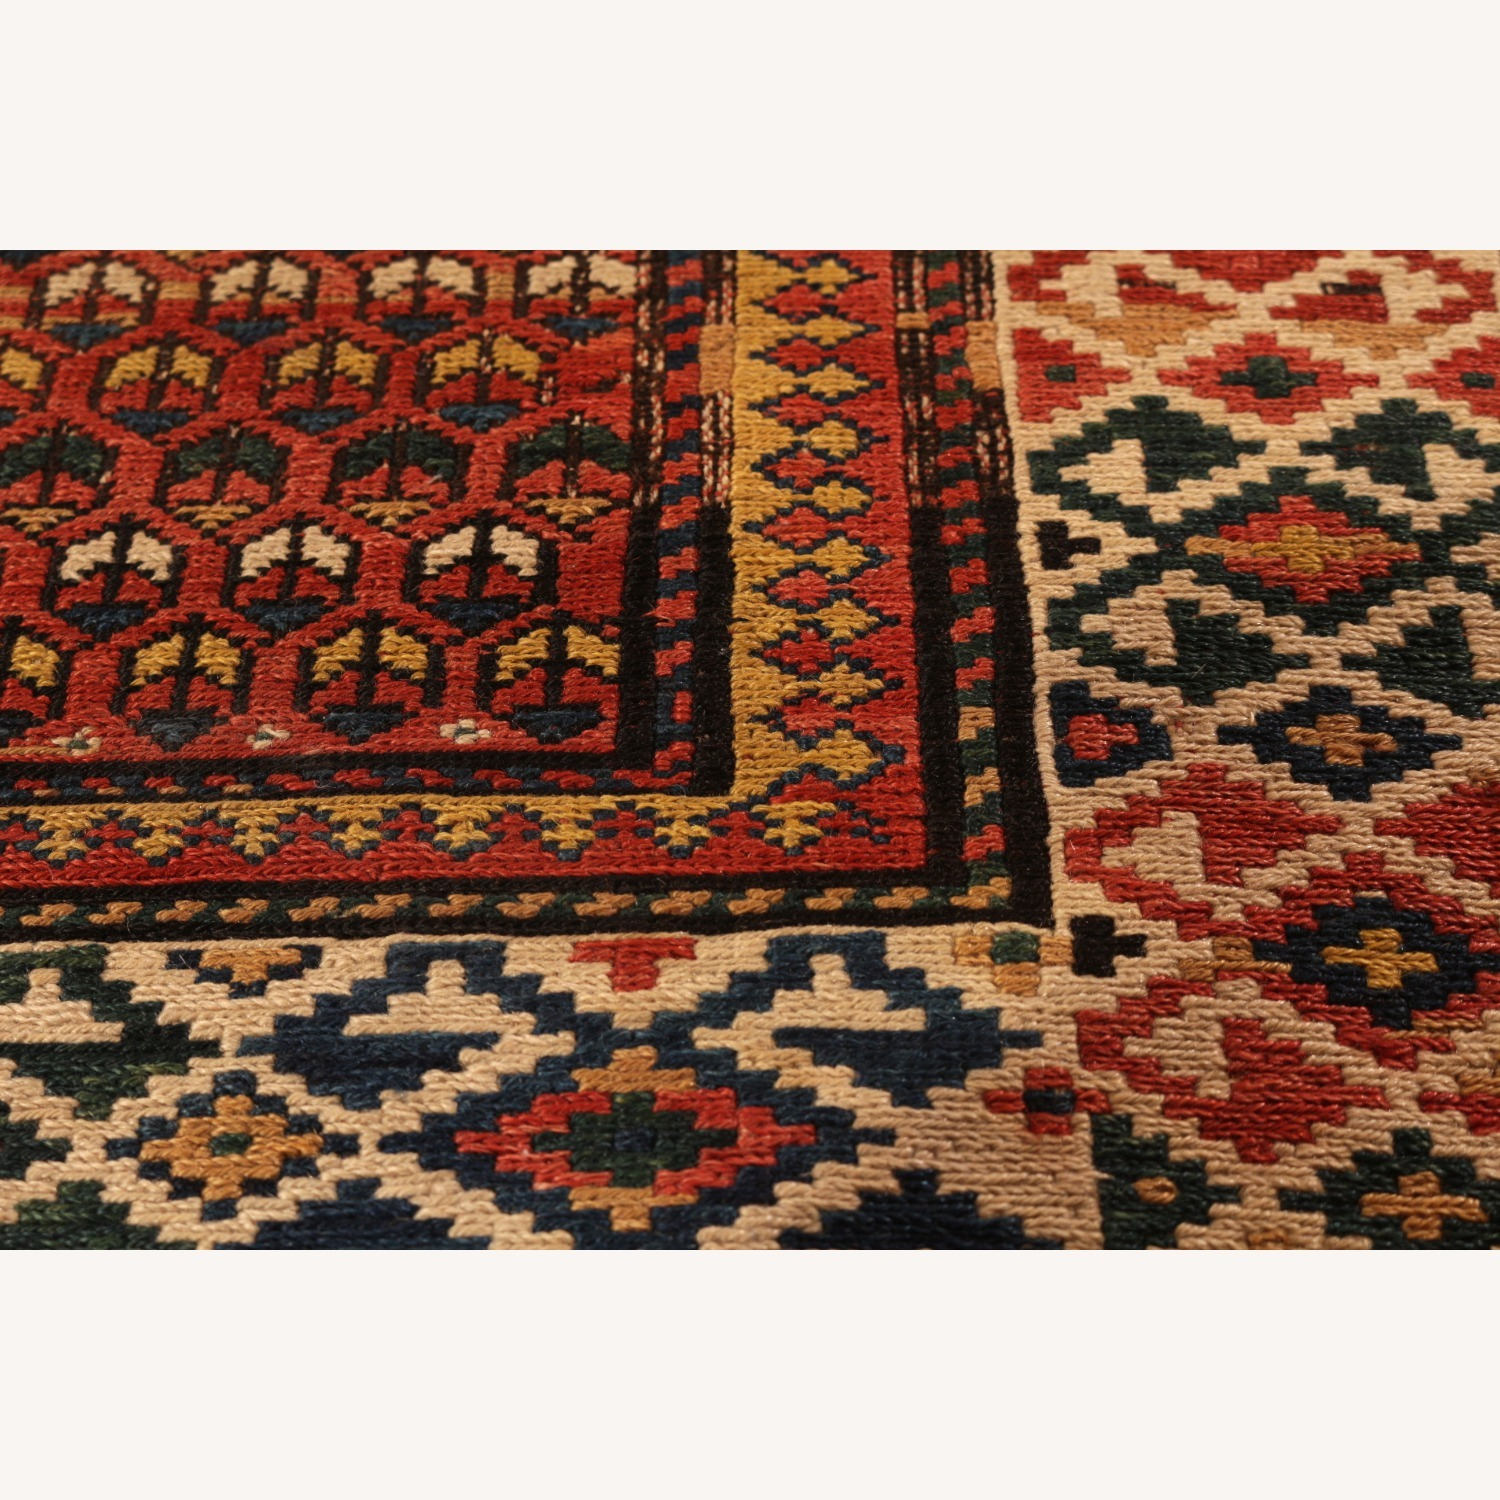 19th-Century Antique Soumak Rug - image-3